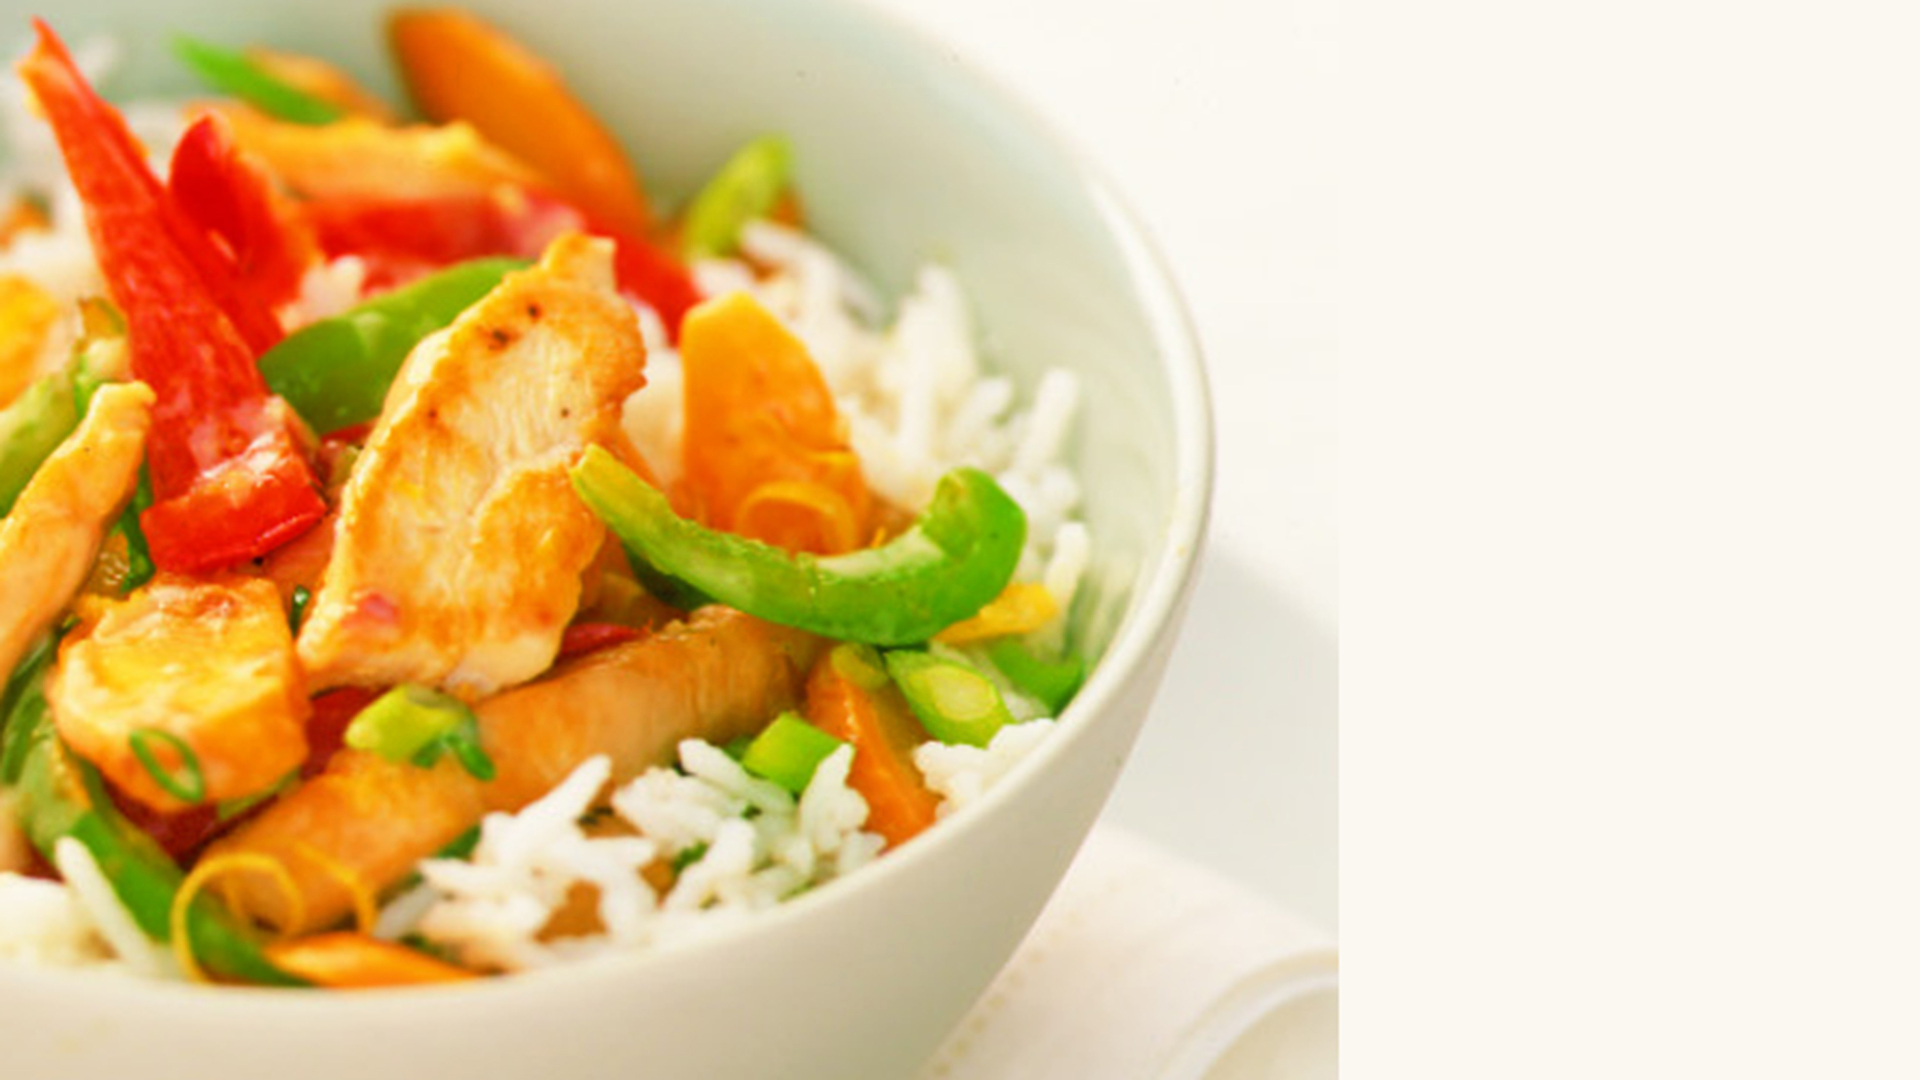 Bowl of rice with cooked chicken, red and green peppers